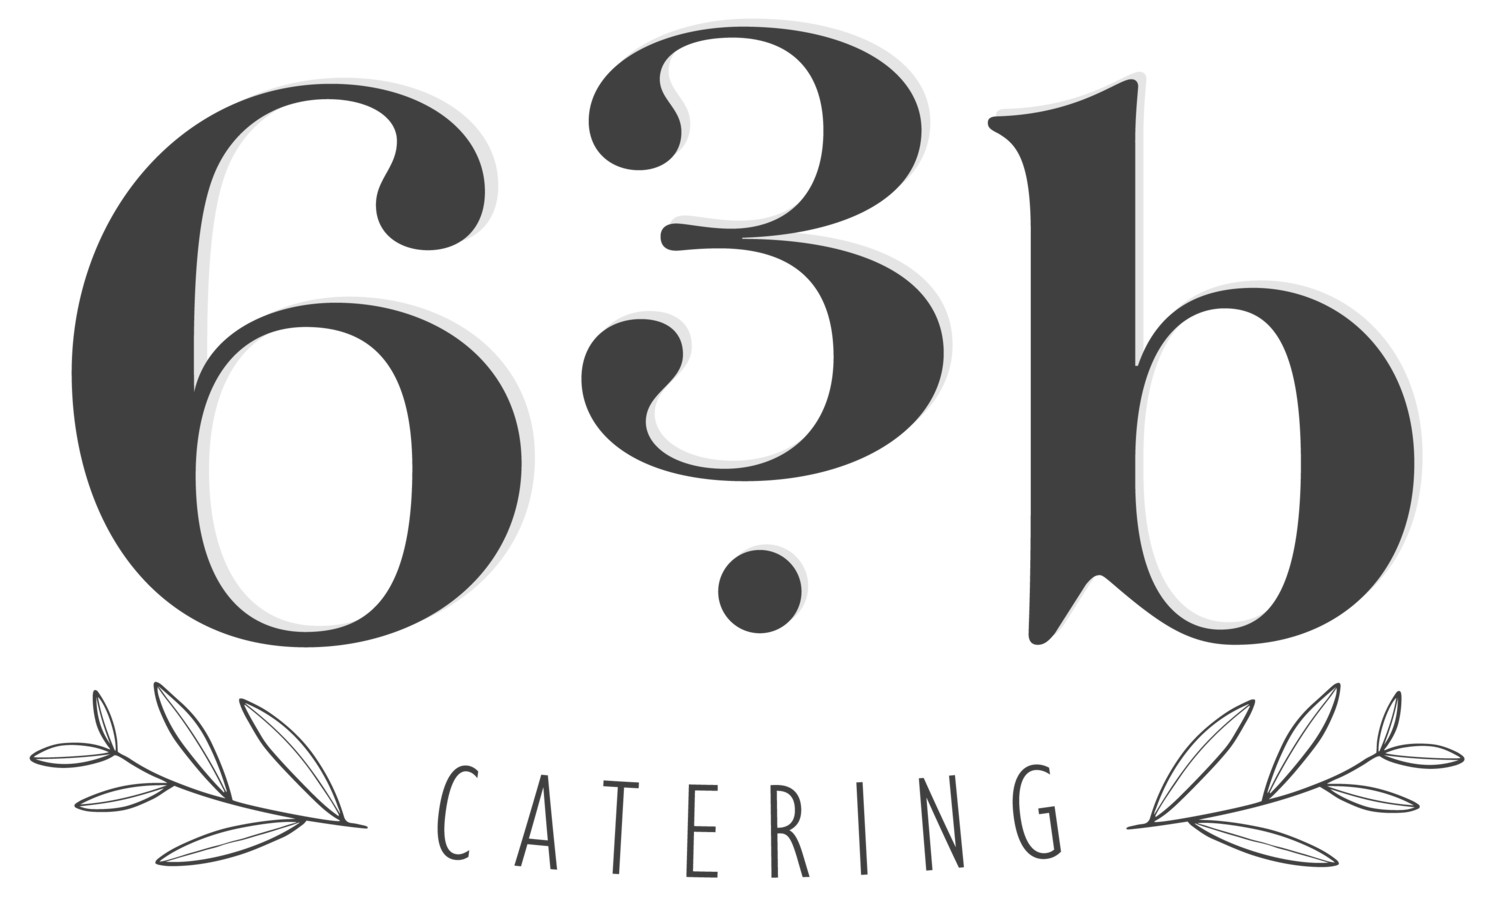 63b Catering